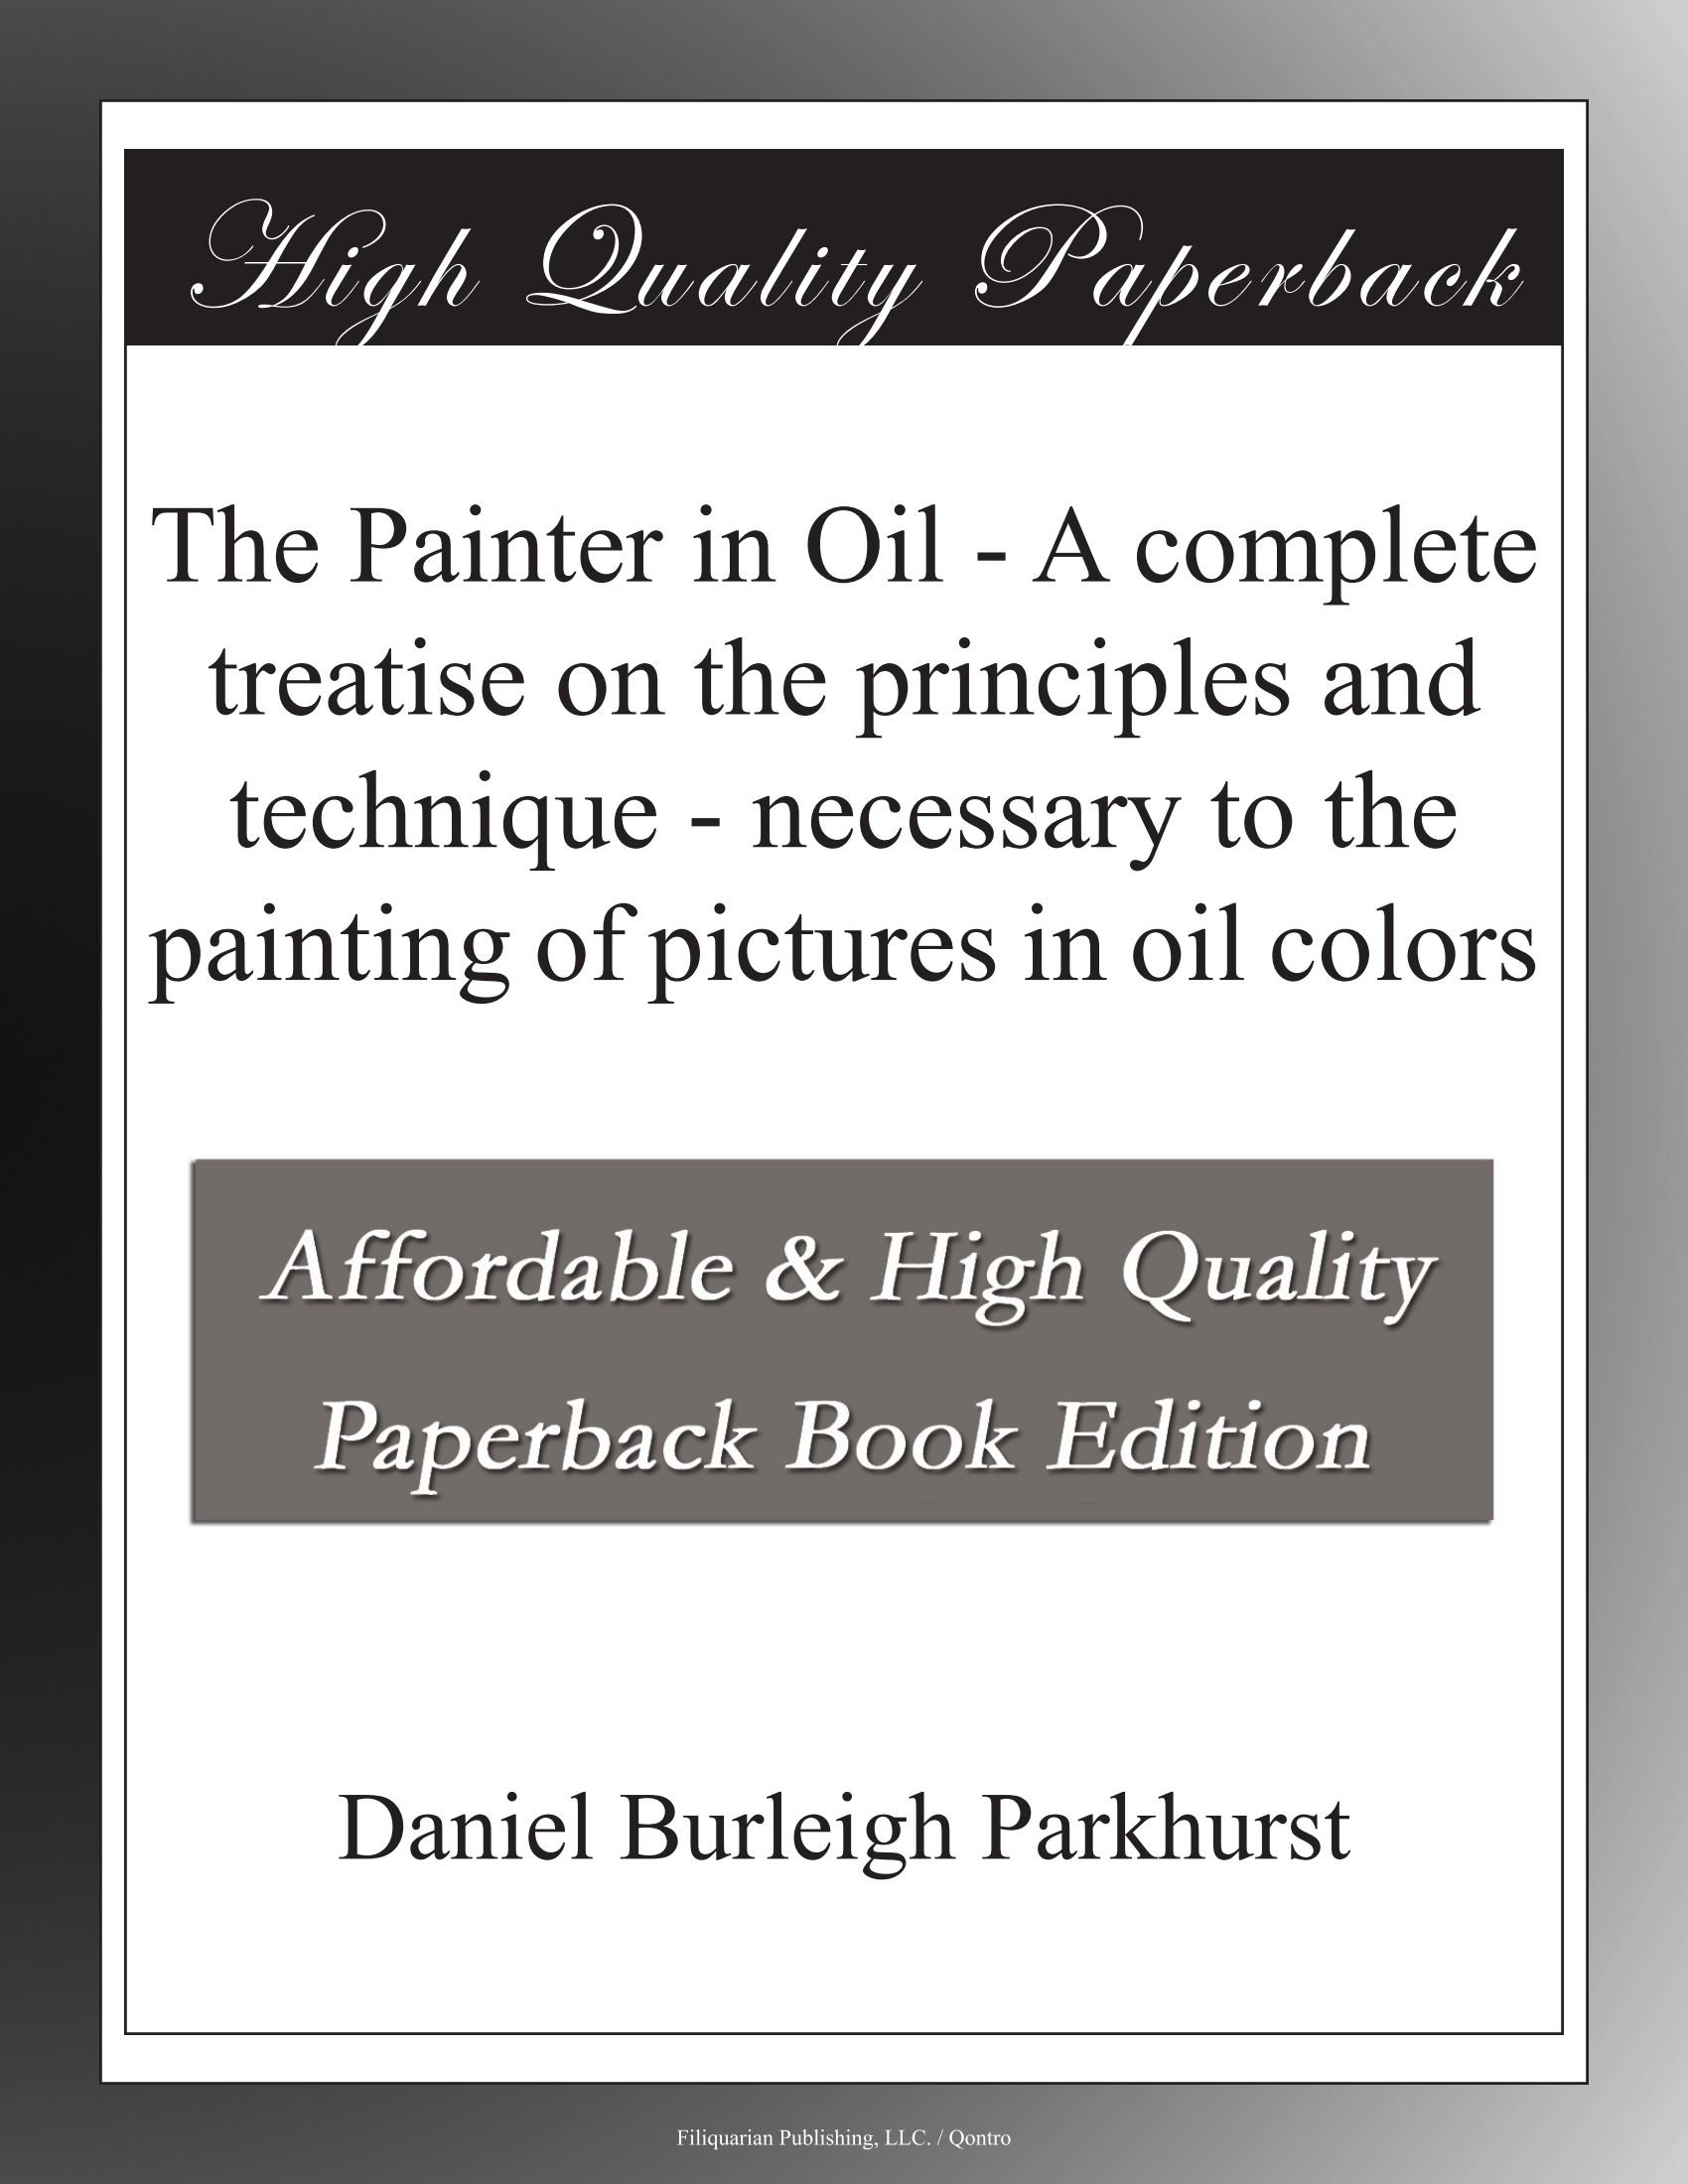 The Painter in Oil - A complete treatise on the principles and technique - necessary to the painting of pictures in oil colors PDF